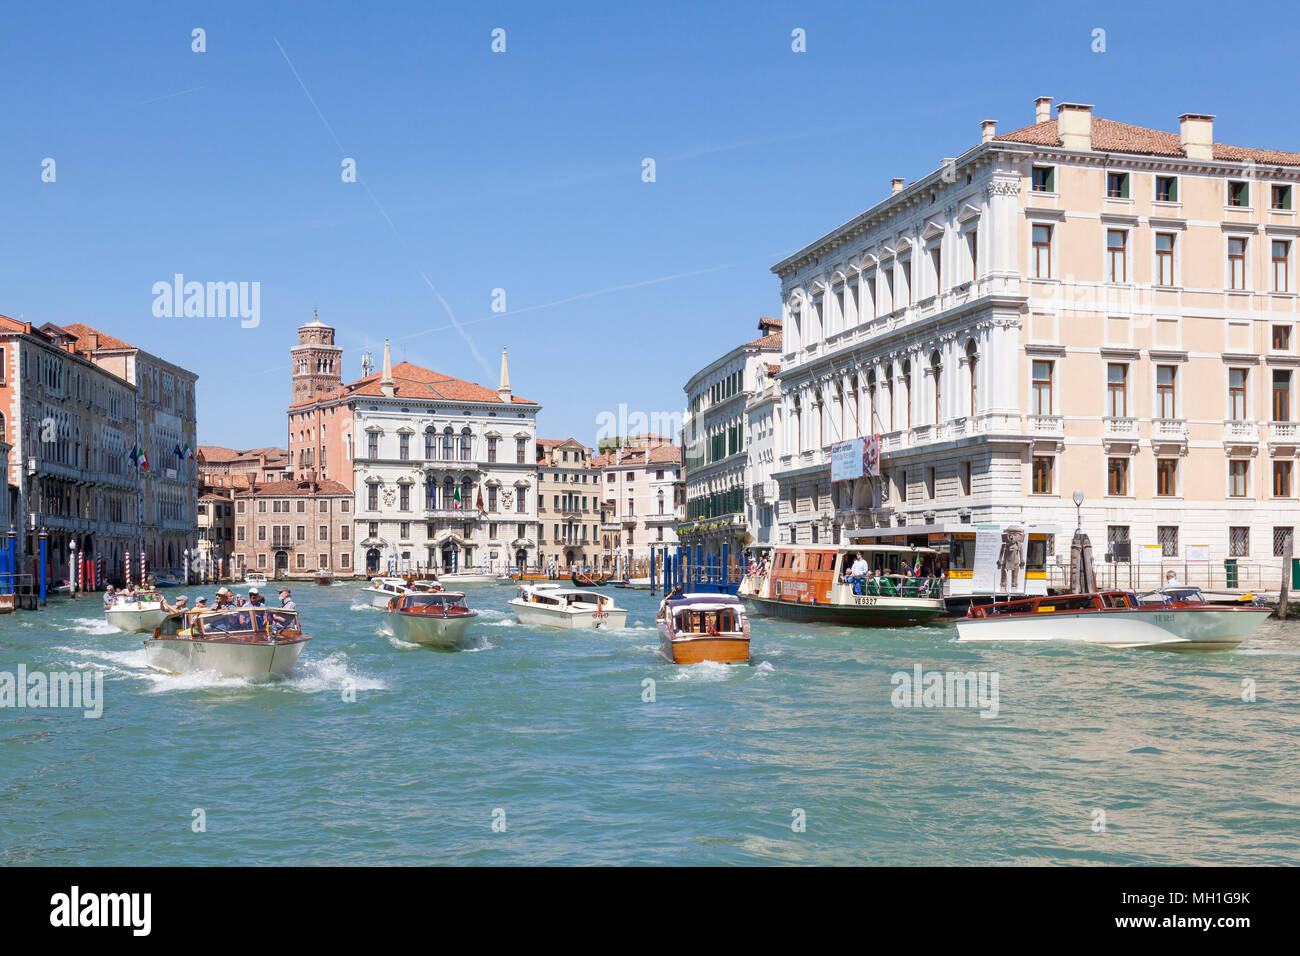 Very busy water taxi boat traffic  filled with tourists sightseeing on the Grand Canal,  San Polo, Venice, Veneto, Italy. The wakes of these boats are - Stock Image